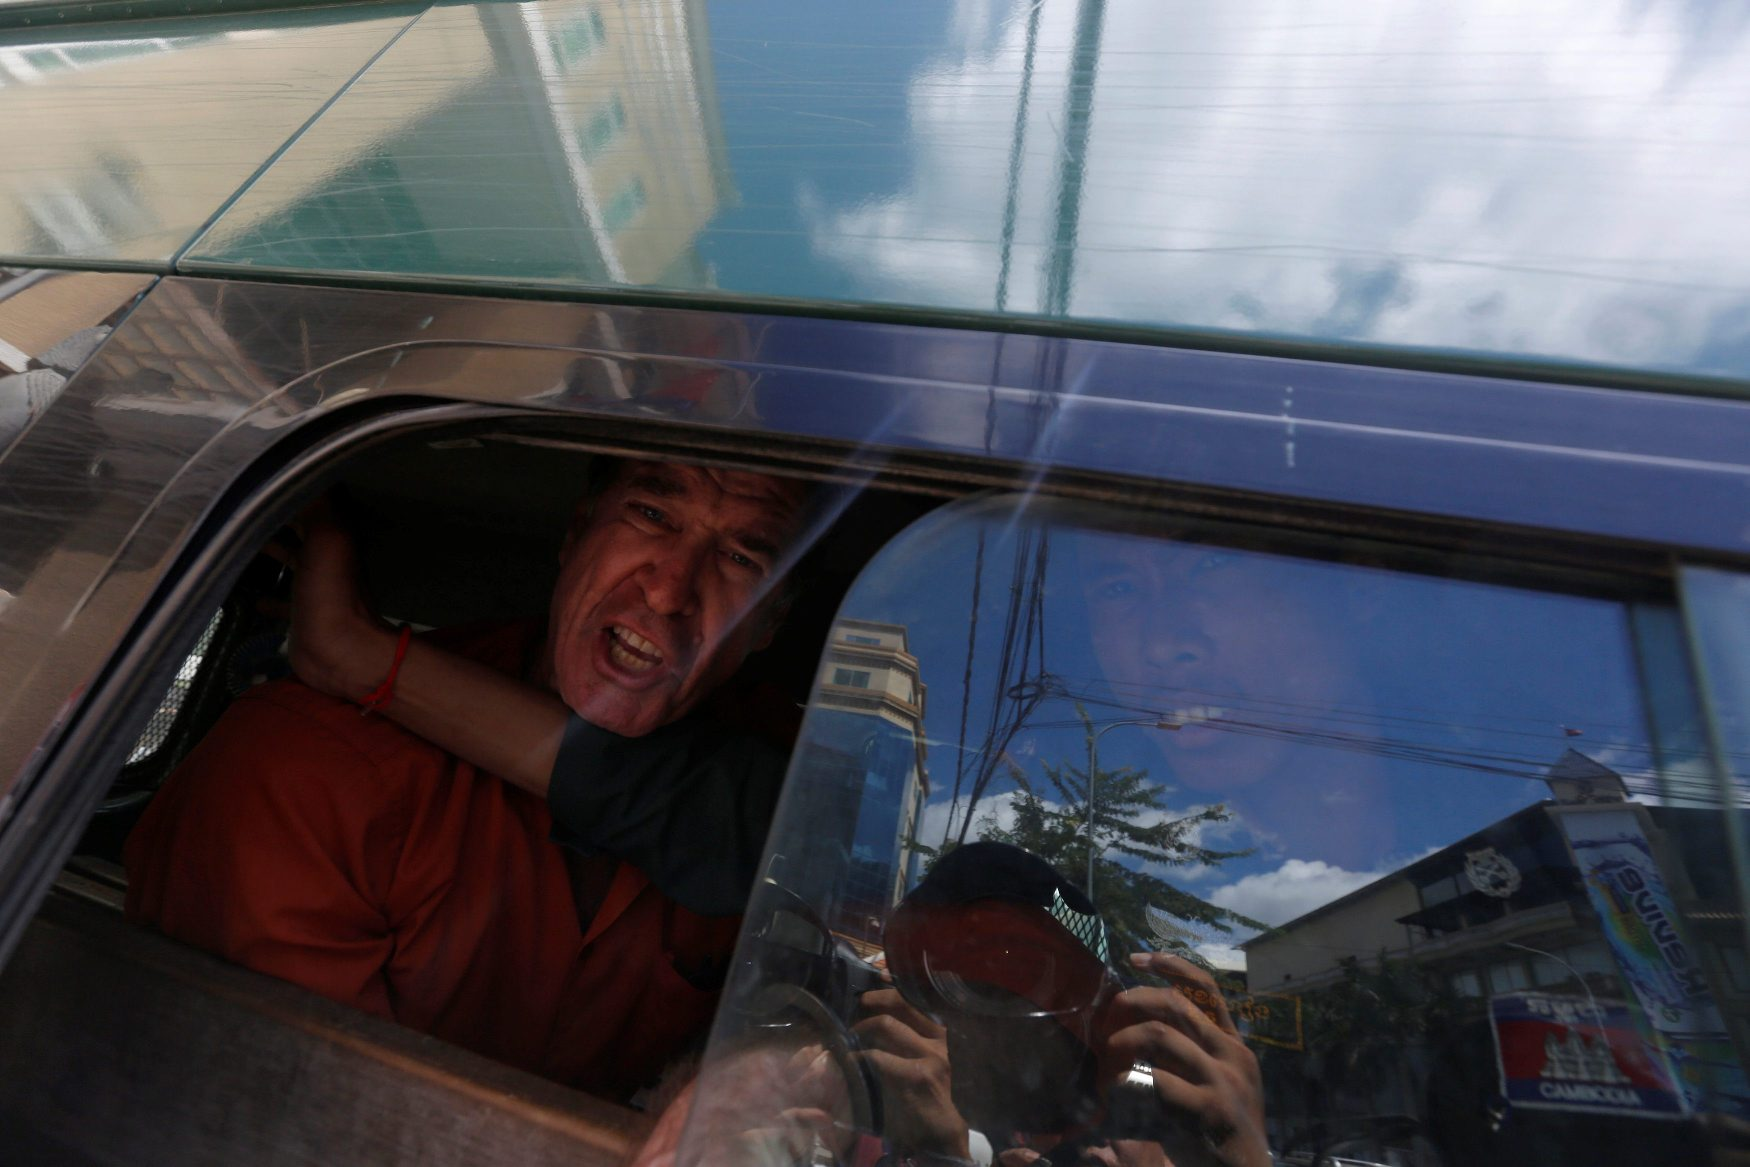 Australian filmmaker James Ricketson shouts inside a prison truck as he leaves the Municipal Court of Phnom Penh, Cambodia, August 31, 2018. REUTERS/Samrang Pring